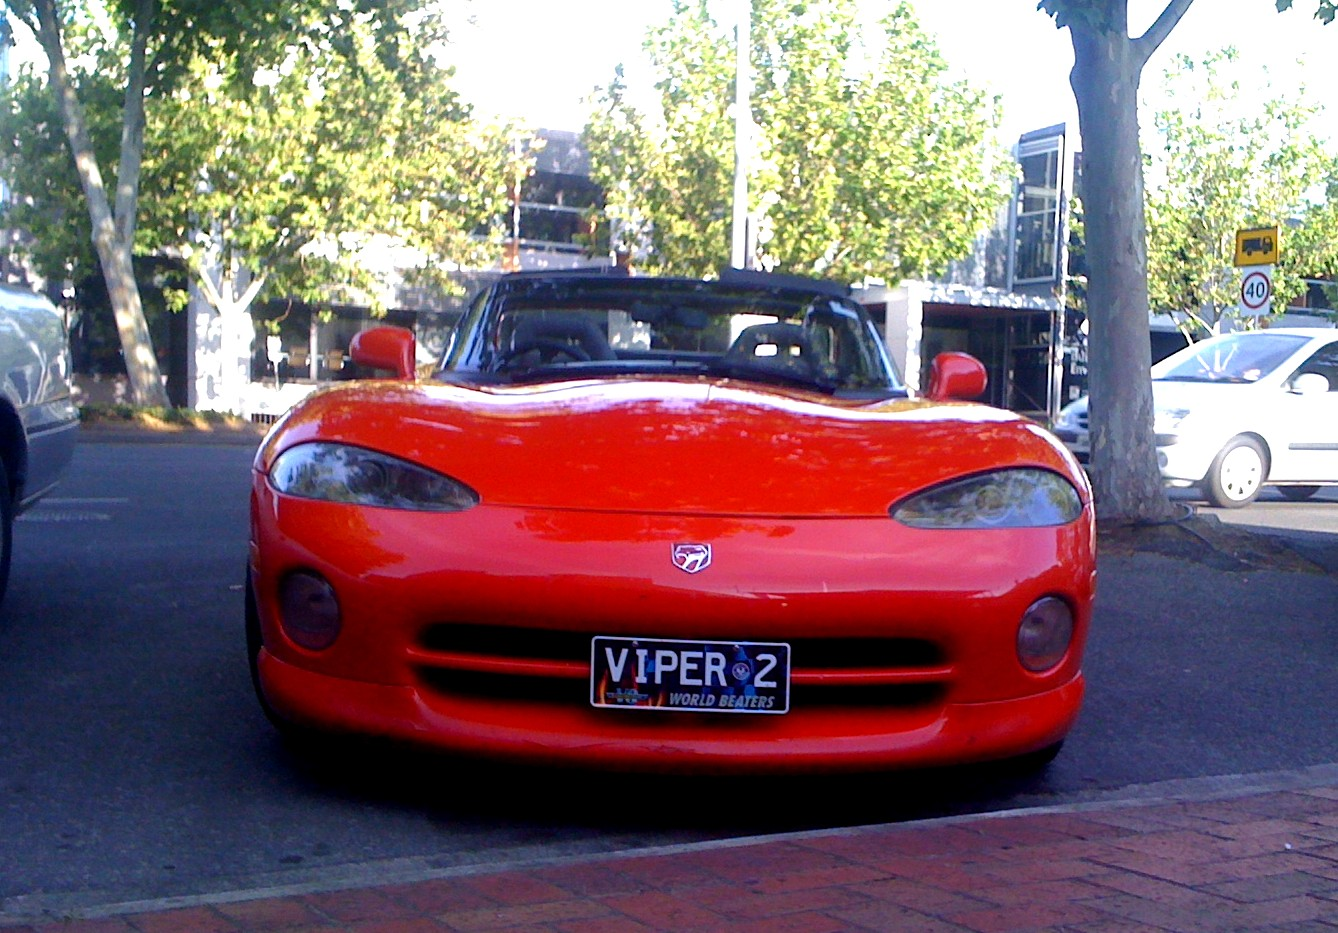 Dodge Viper RT/10 - Spotted